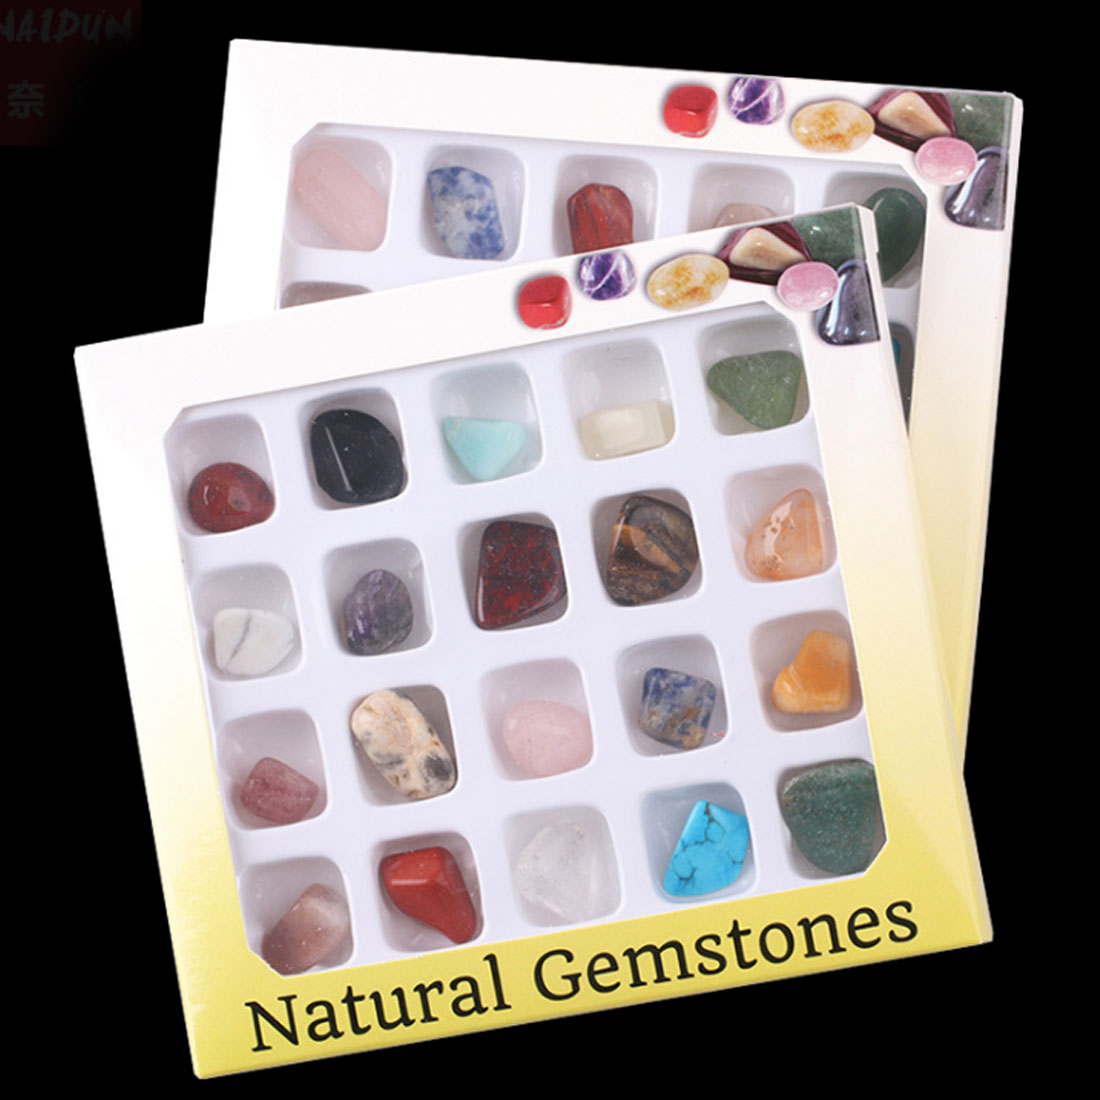 20 Slots Natural Gemstones Children Collection Box Gift Cognitive Discovery Toy Science Toys